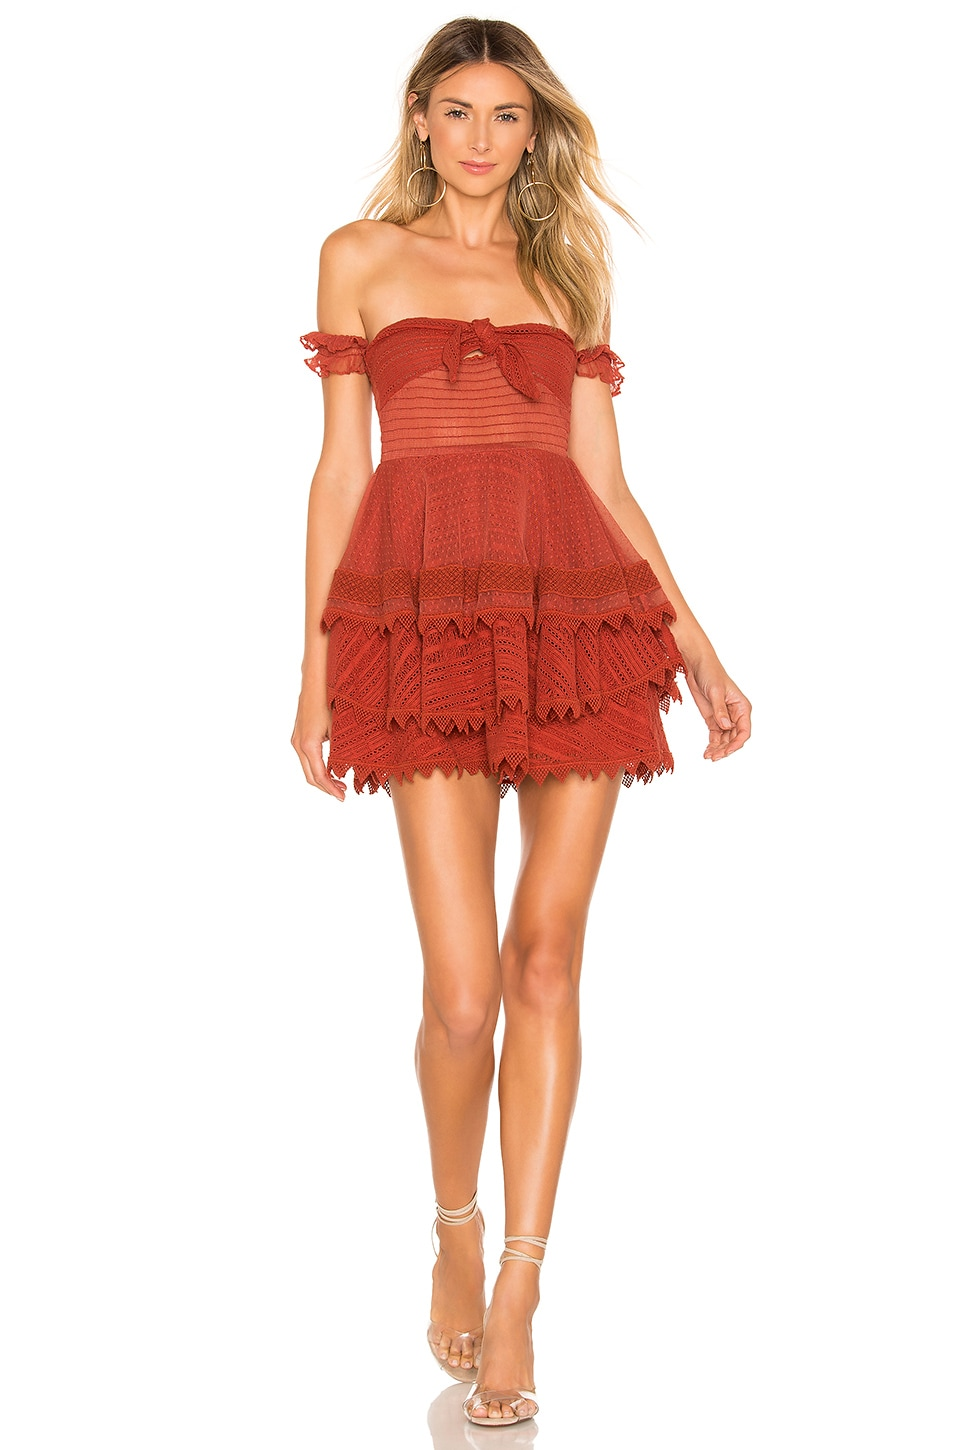 House of Harlow 1960 X REVOLVE Gaines Dress in Red